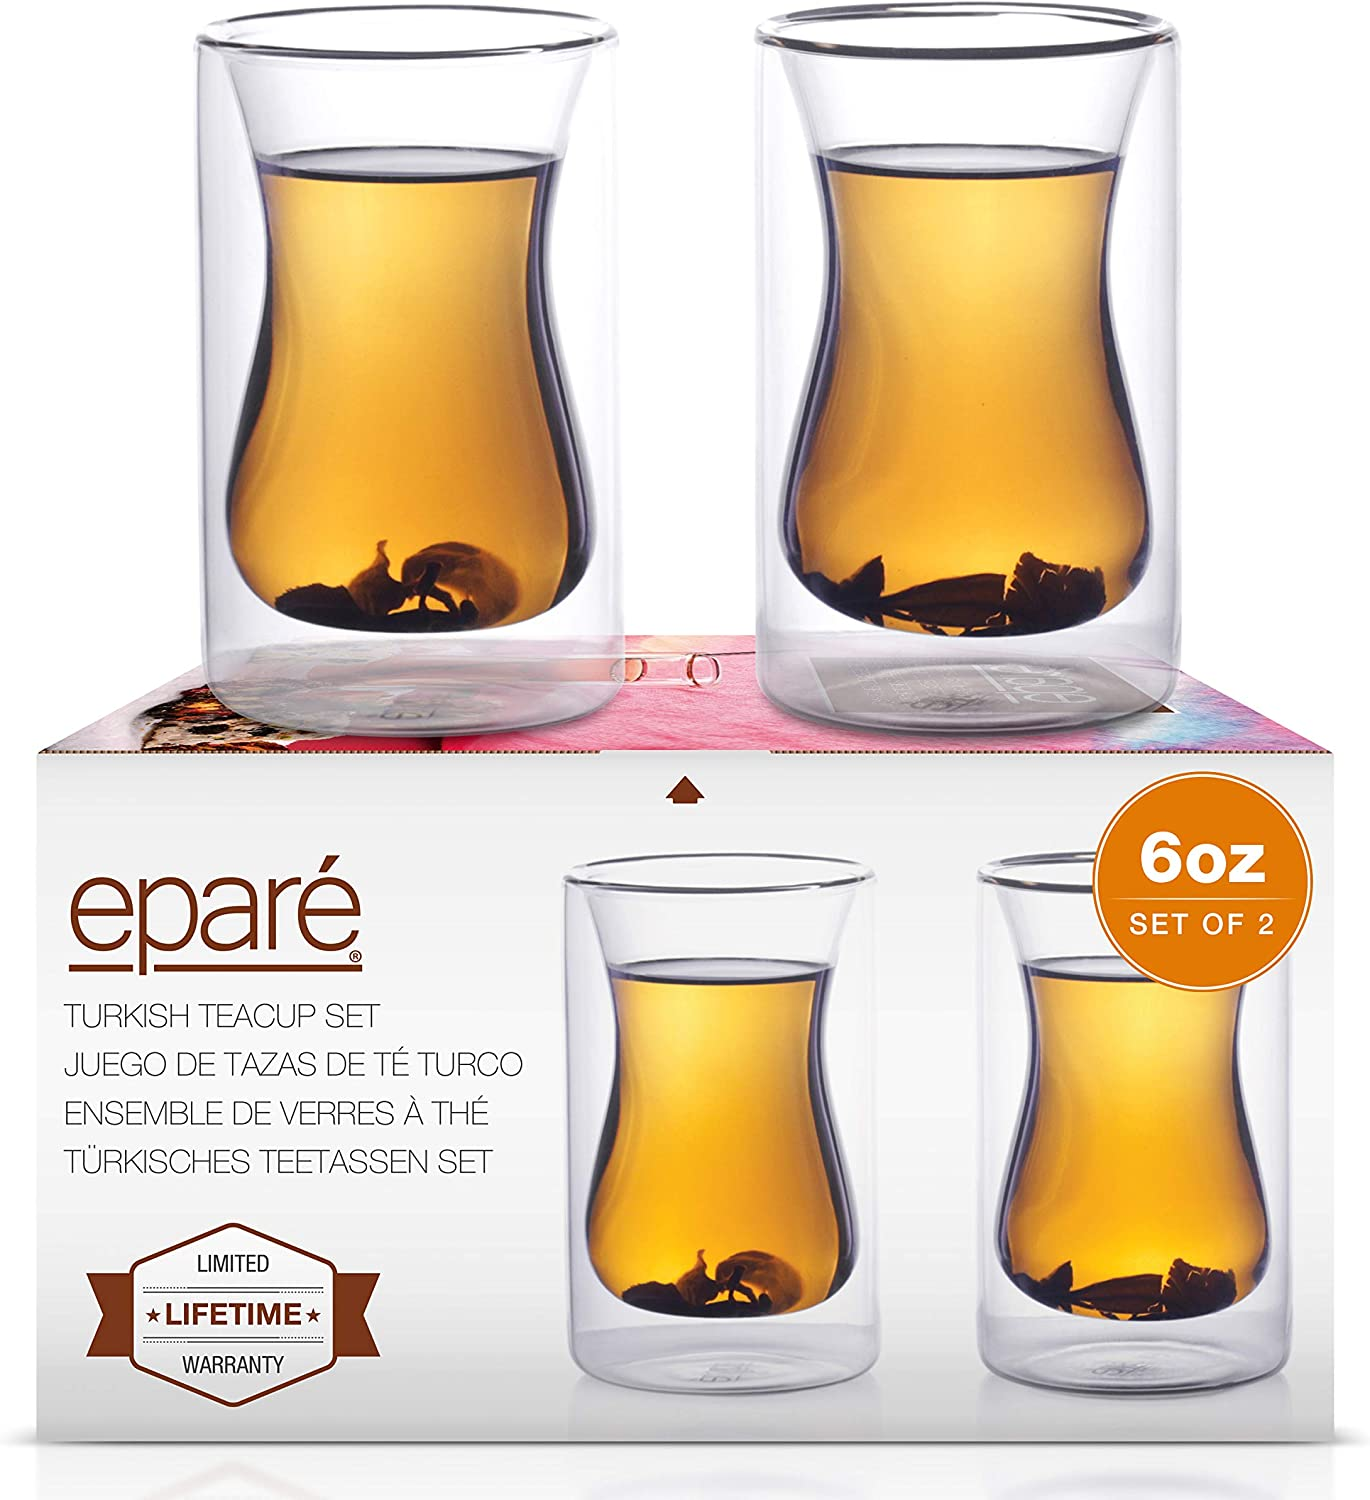 6 oz Turkish Tea Cups - Set Of 2 - Double Walled Clear Glass Cup - Small Coffee Mug - Cafe Latte Espresso or Cappuccino Beverages Mugs by Eparé